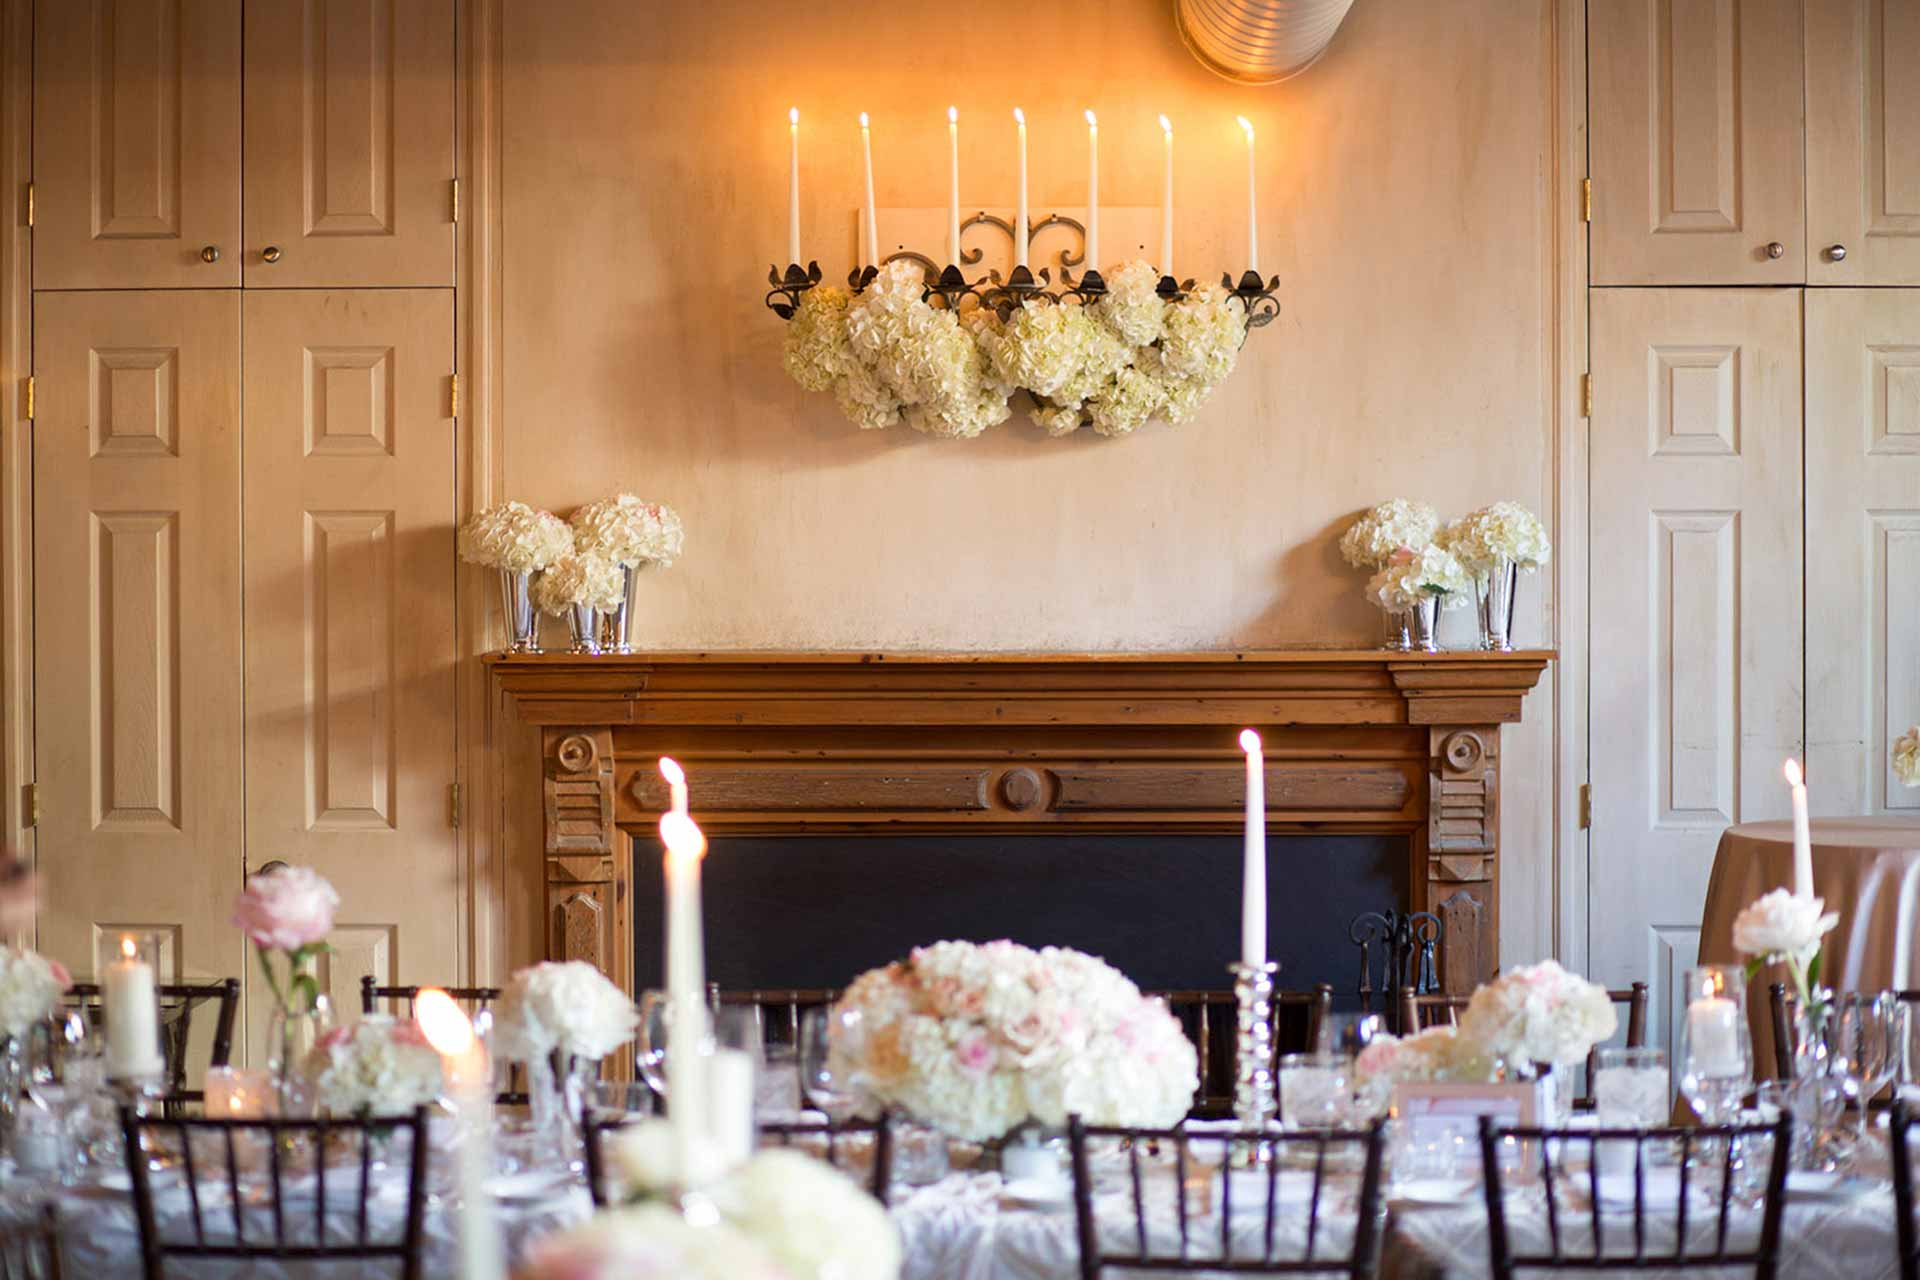 Toronto Wedding Venue - Restaurant Reception - Elegant Head Table and Fireplace